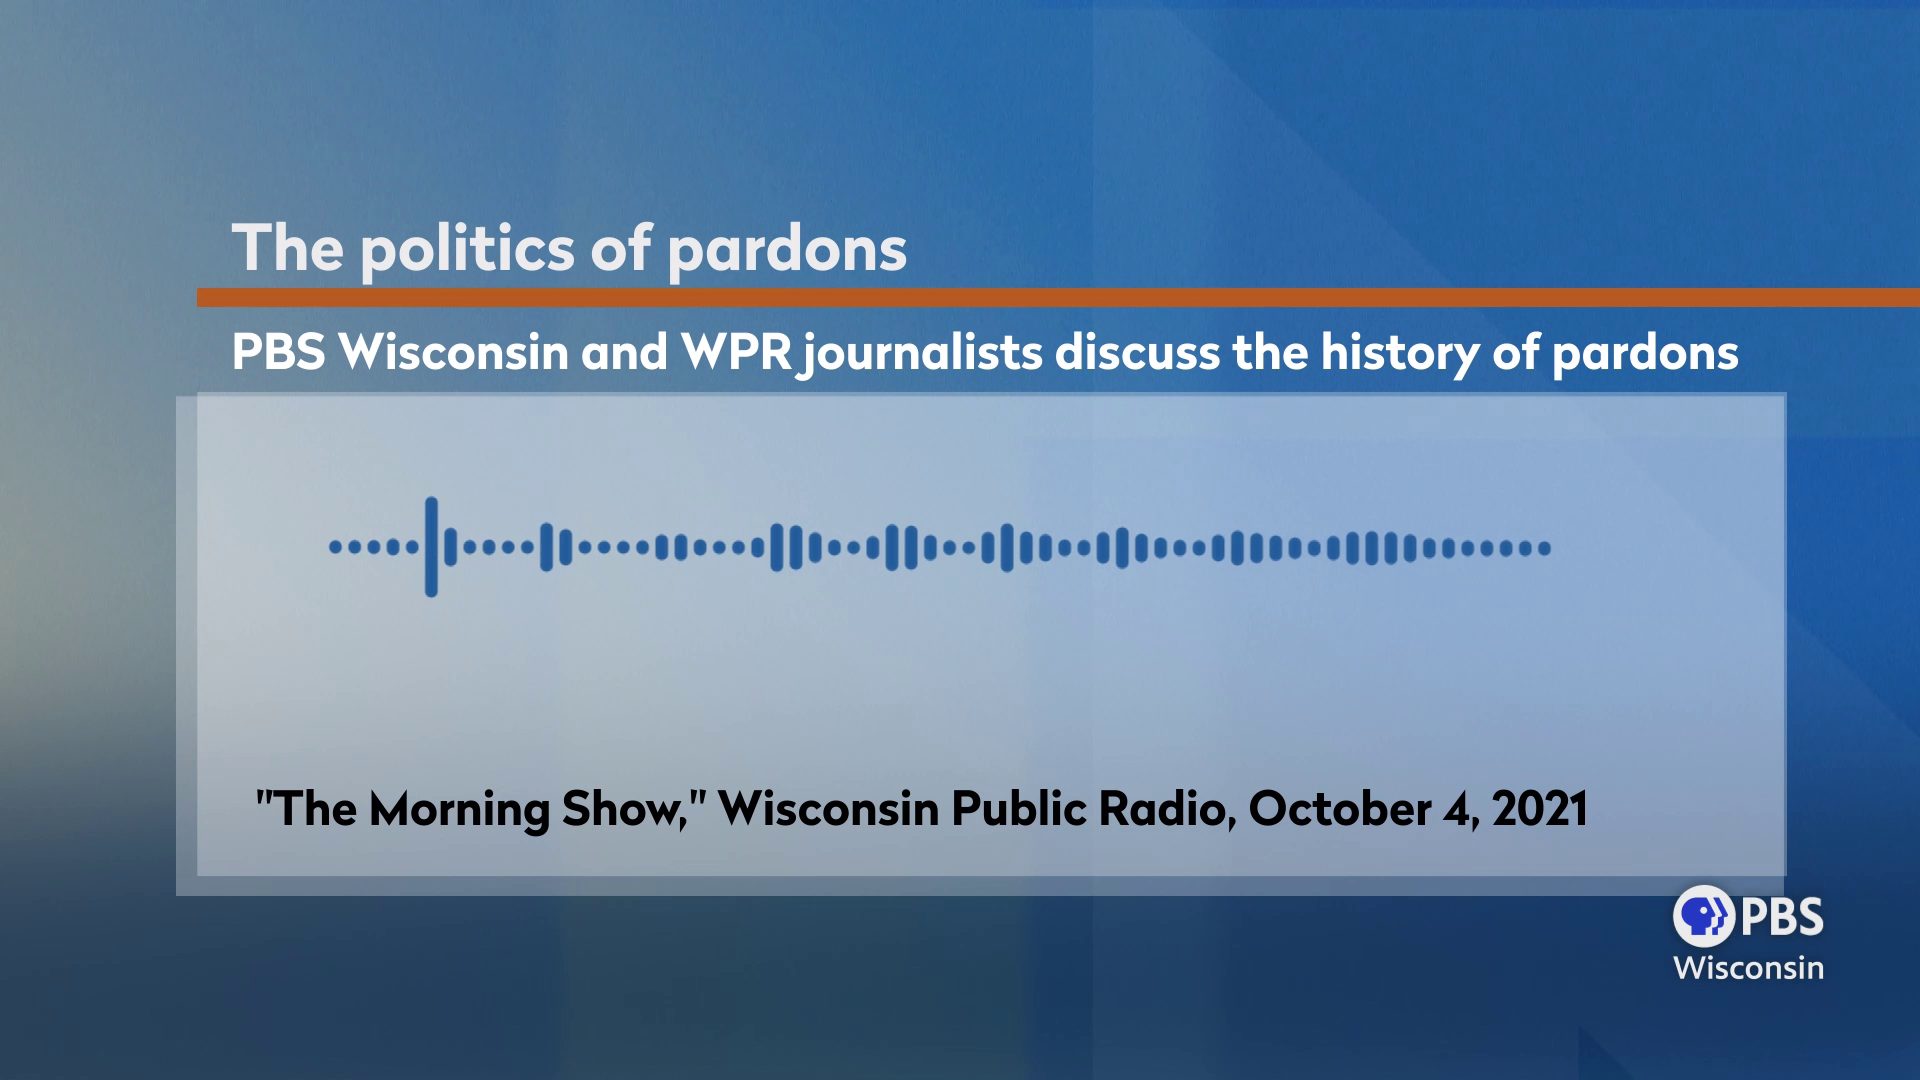 A graphic showing an audio waveform with the title text The politics of pardons: PBS Wisconsin and WPR journalists discuss the history of pardons from the October 4, 2021 edition of The Morning Show on Wisconsin Public Radiodiscuss the history of pardons from the October 4, 2021 edition of The Morning Show on Wisconsin Public Radio